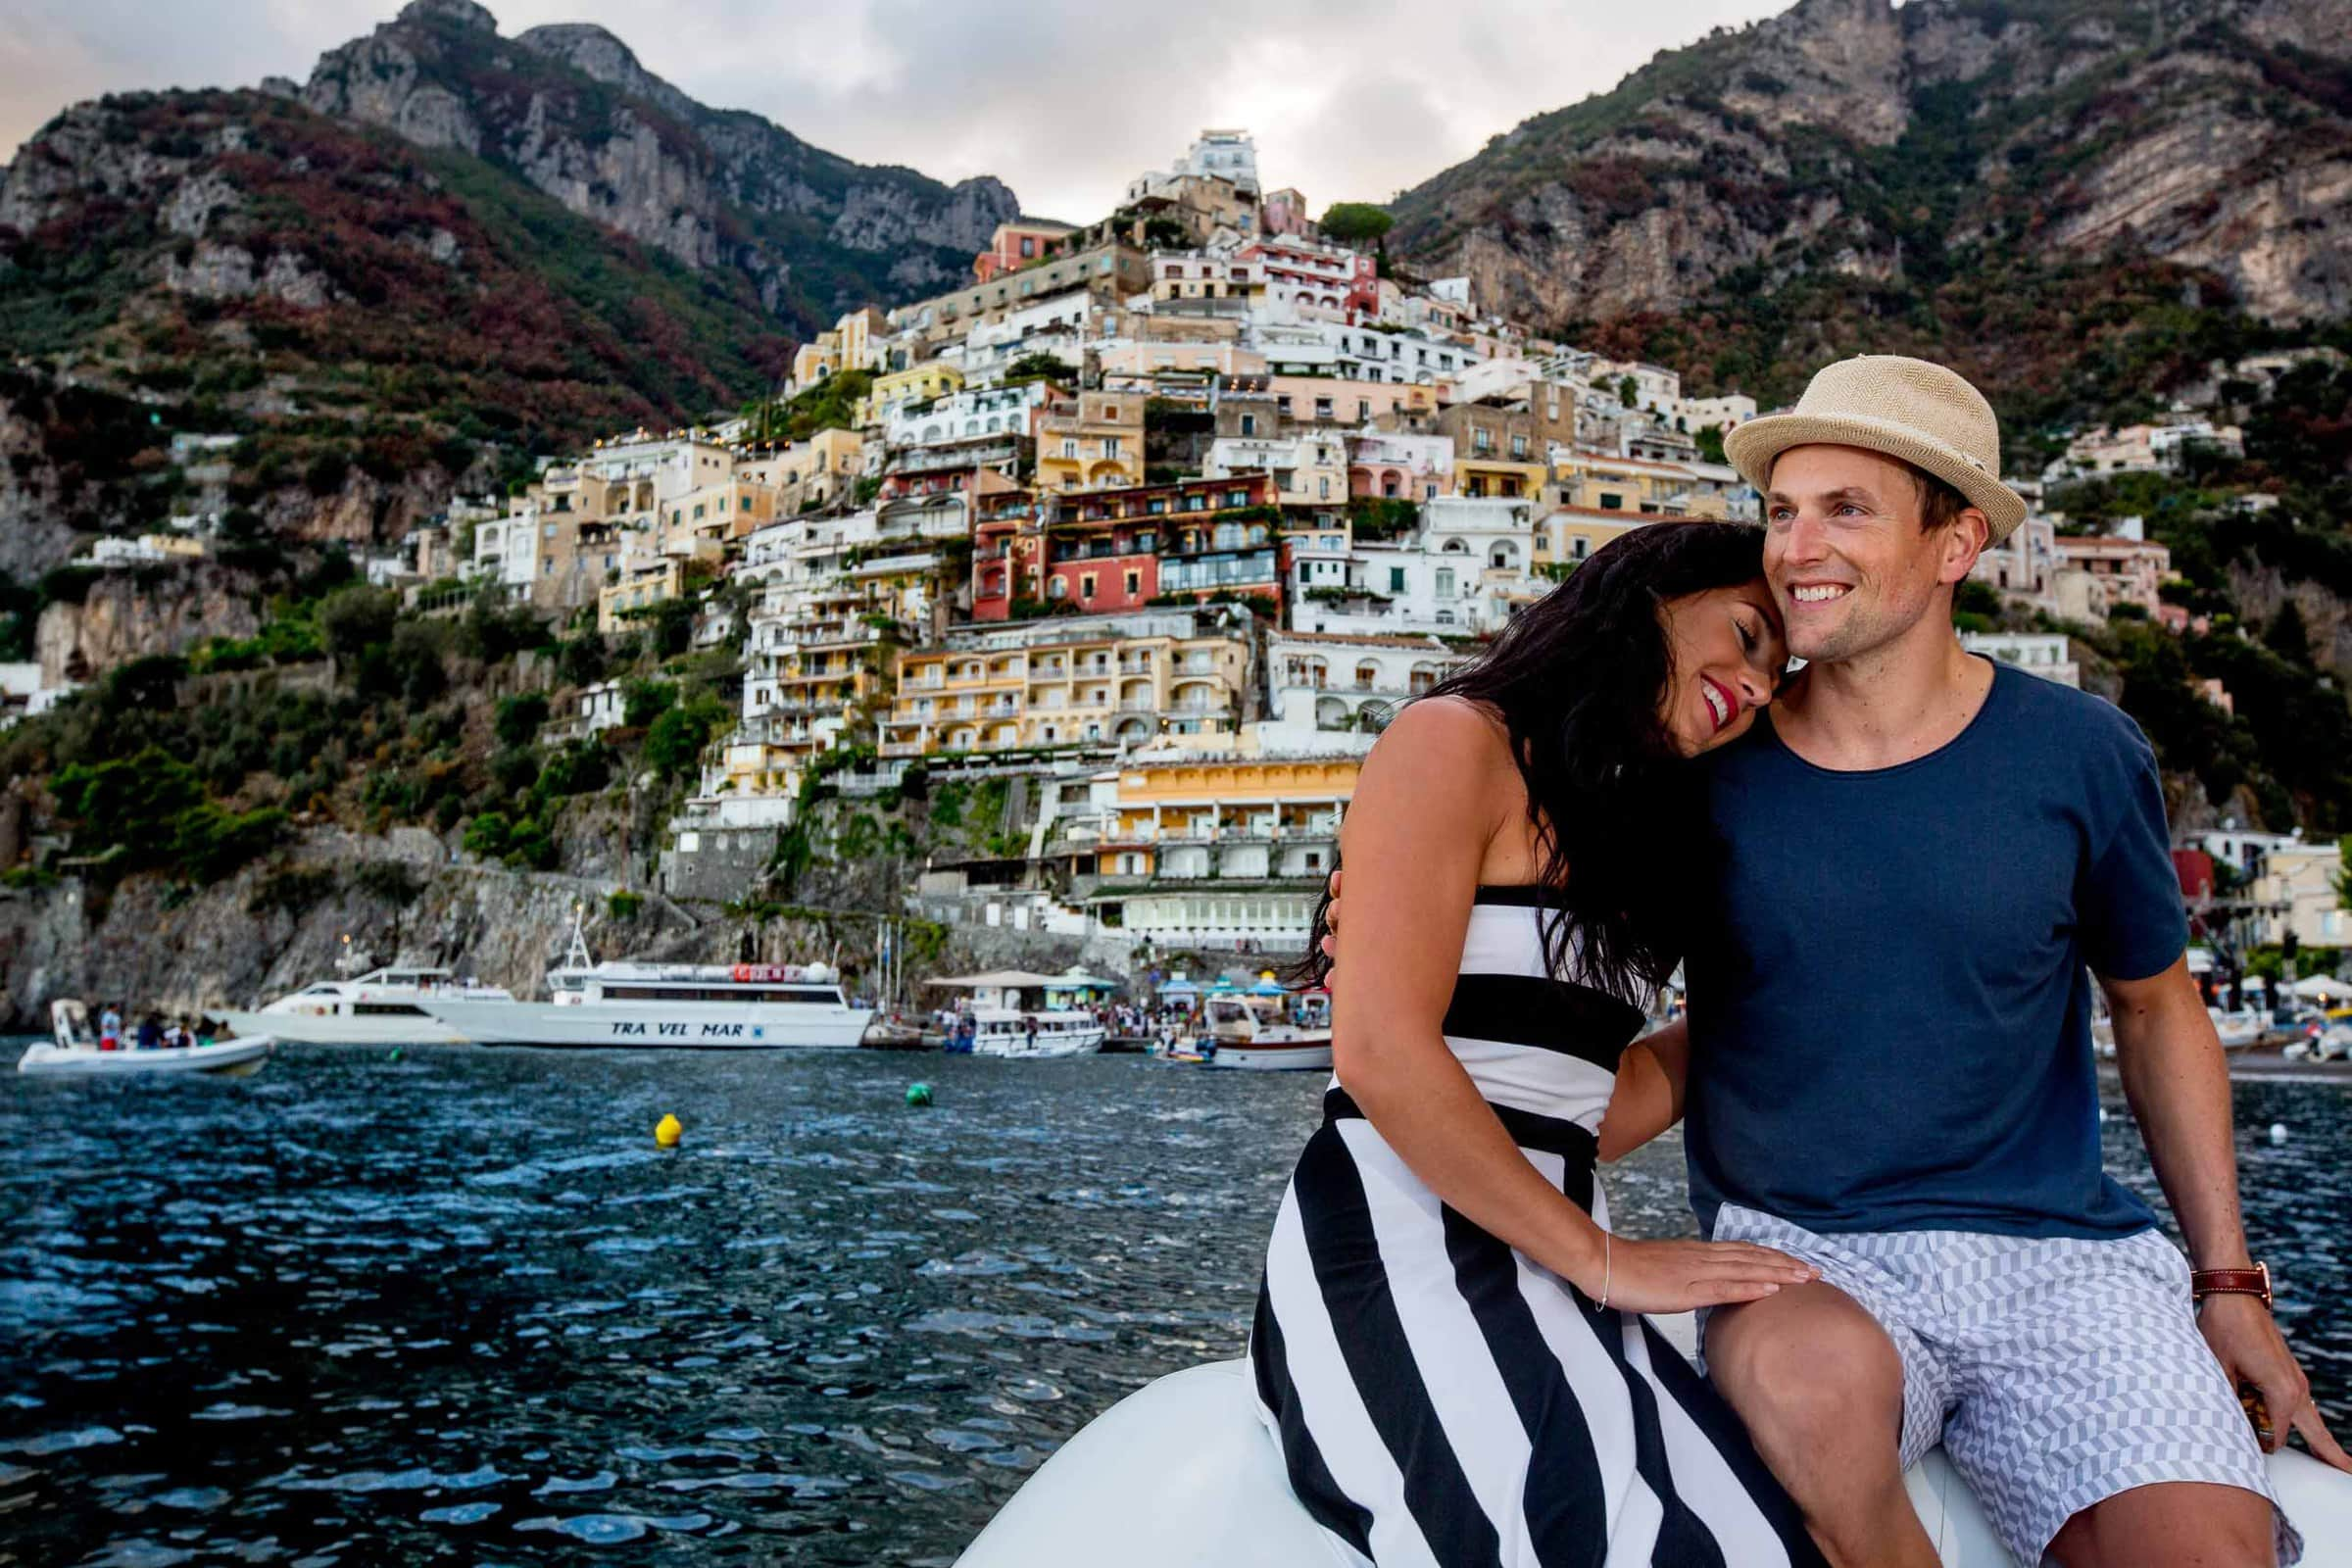 Lovely bride and groom boating portrait the day after their Ravello wedding elopement at Villa Cimbrone along the Amafi coast in Italy.